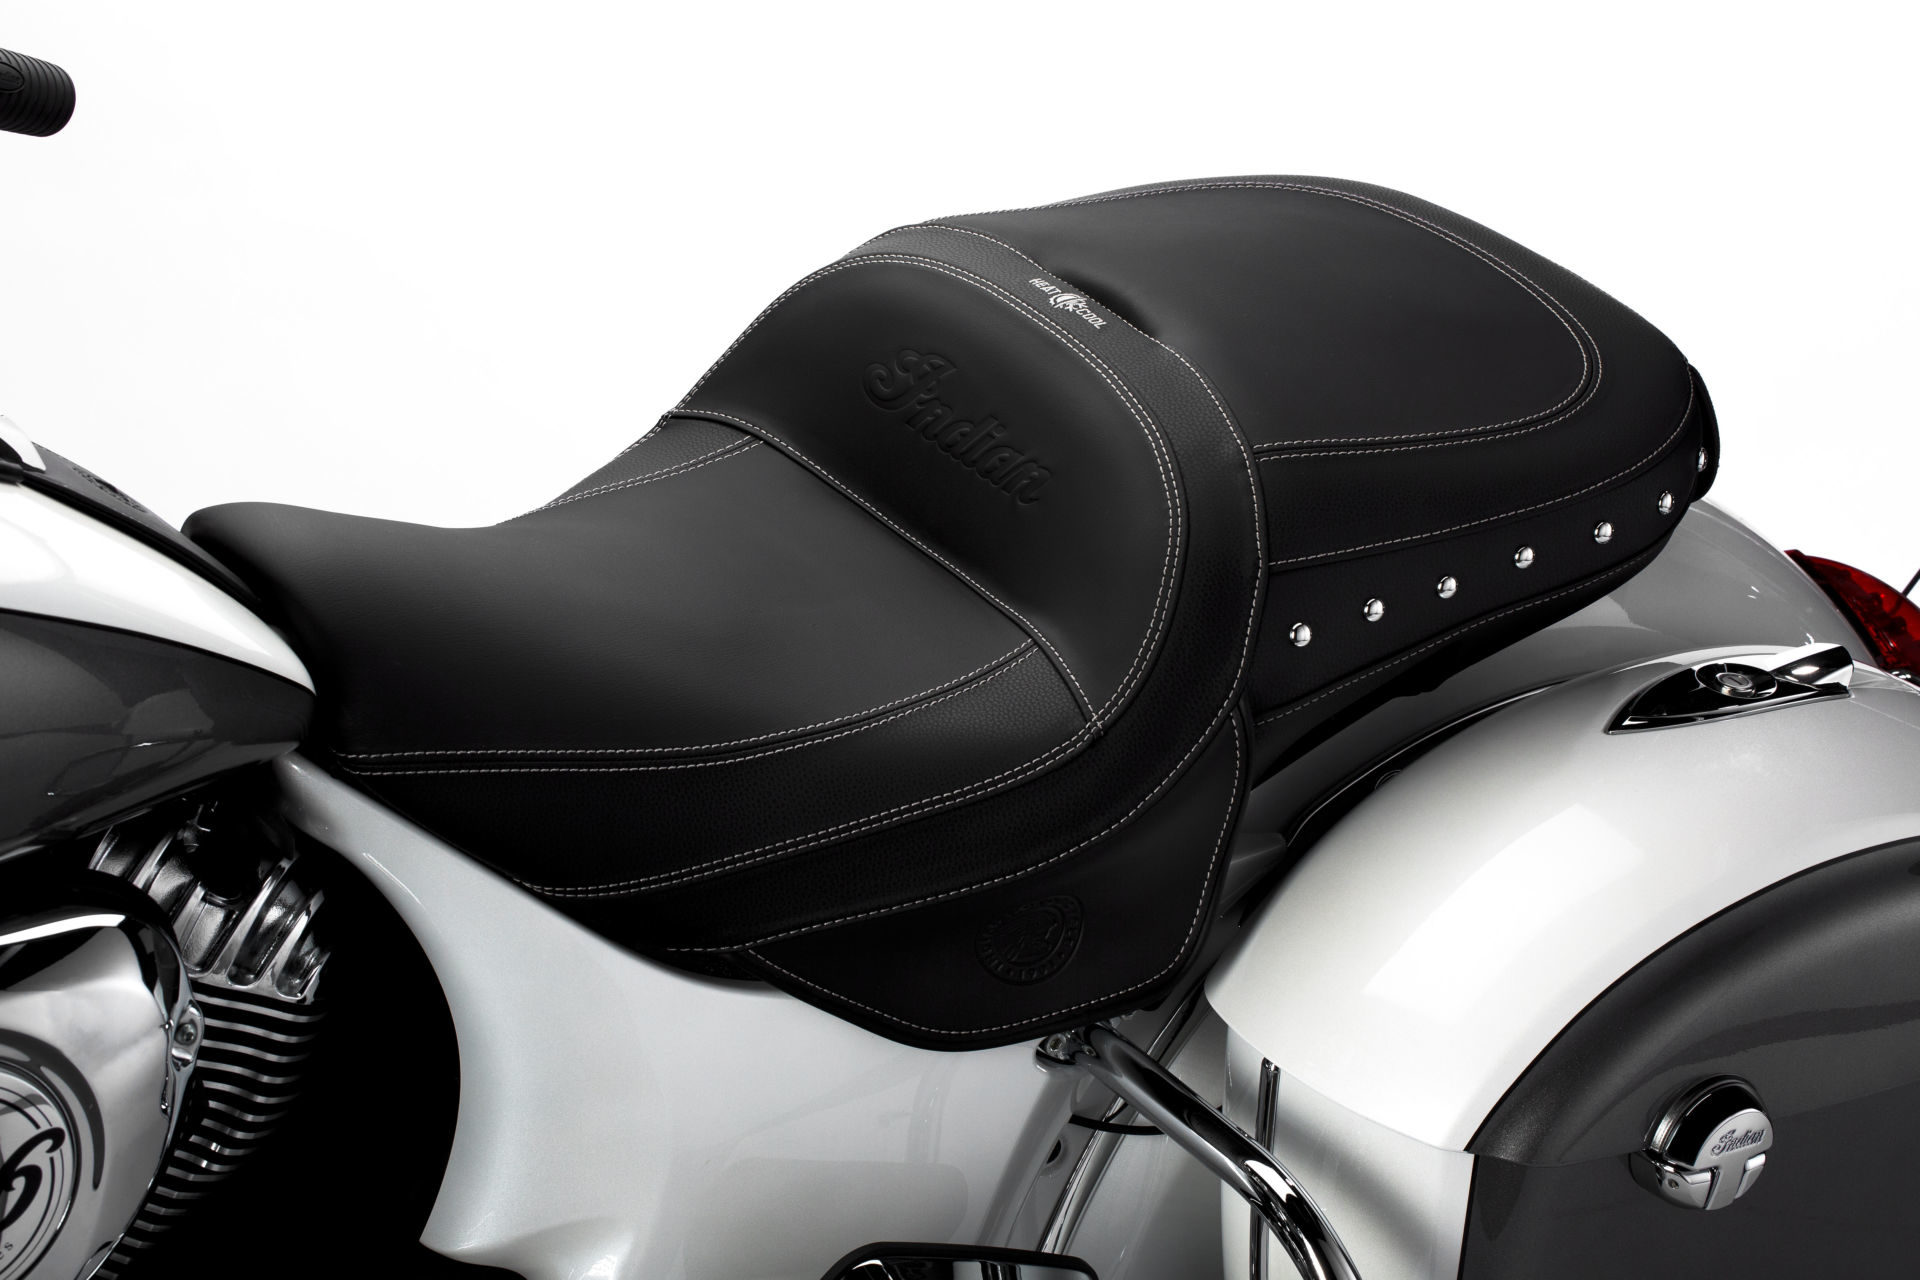 Indian Motorcycle's ClimaCommand Classic Seat with heating and cooling. Photo courtesy Indian Motorcycle.